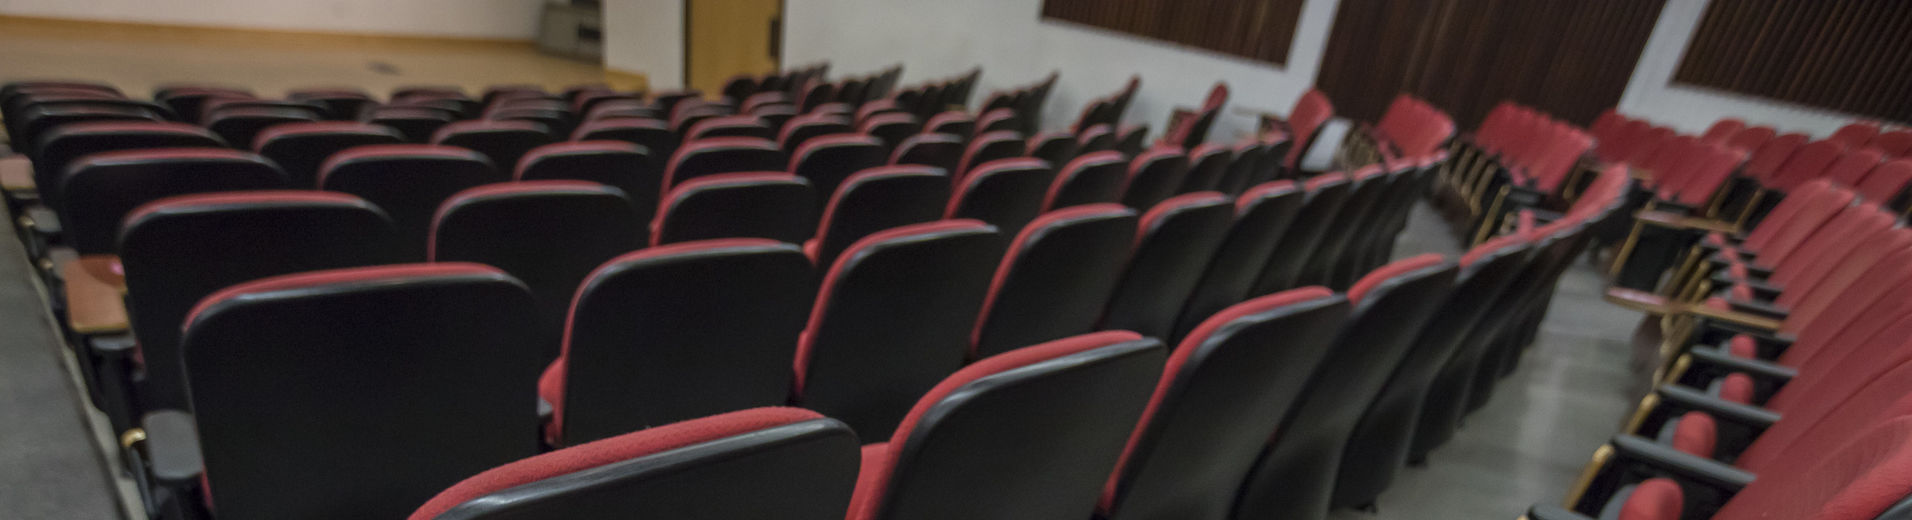 A lecture hall set for physical distancing.